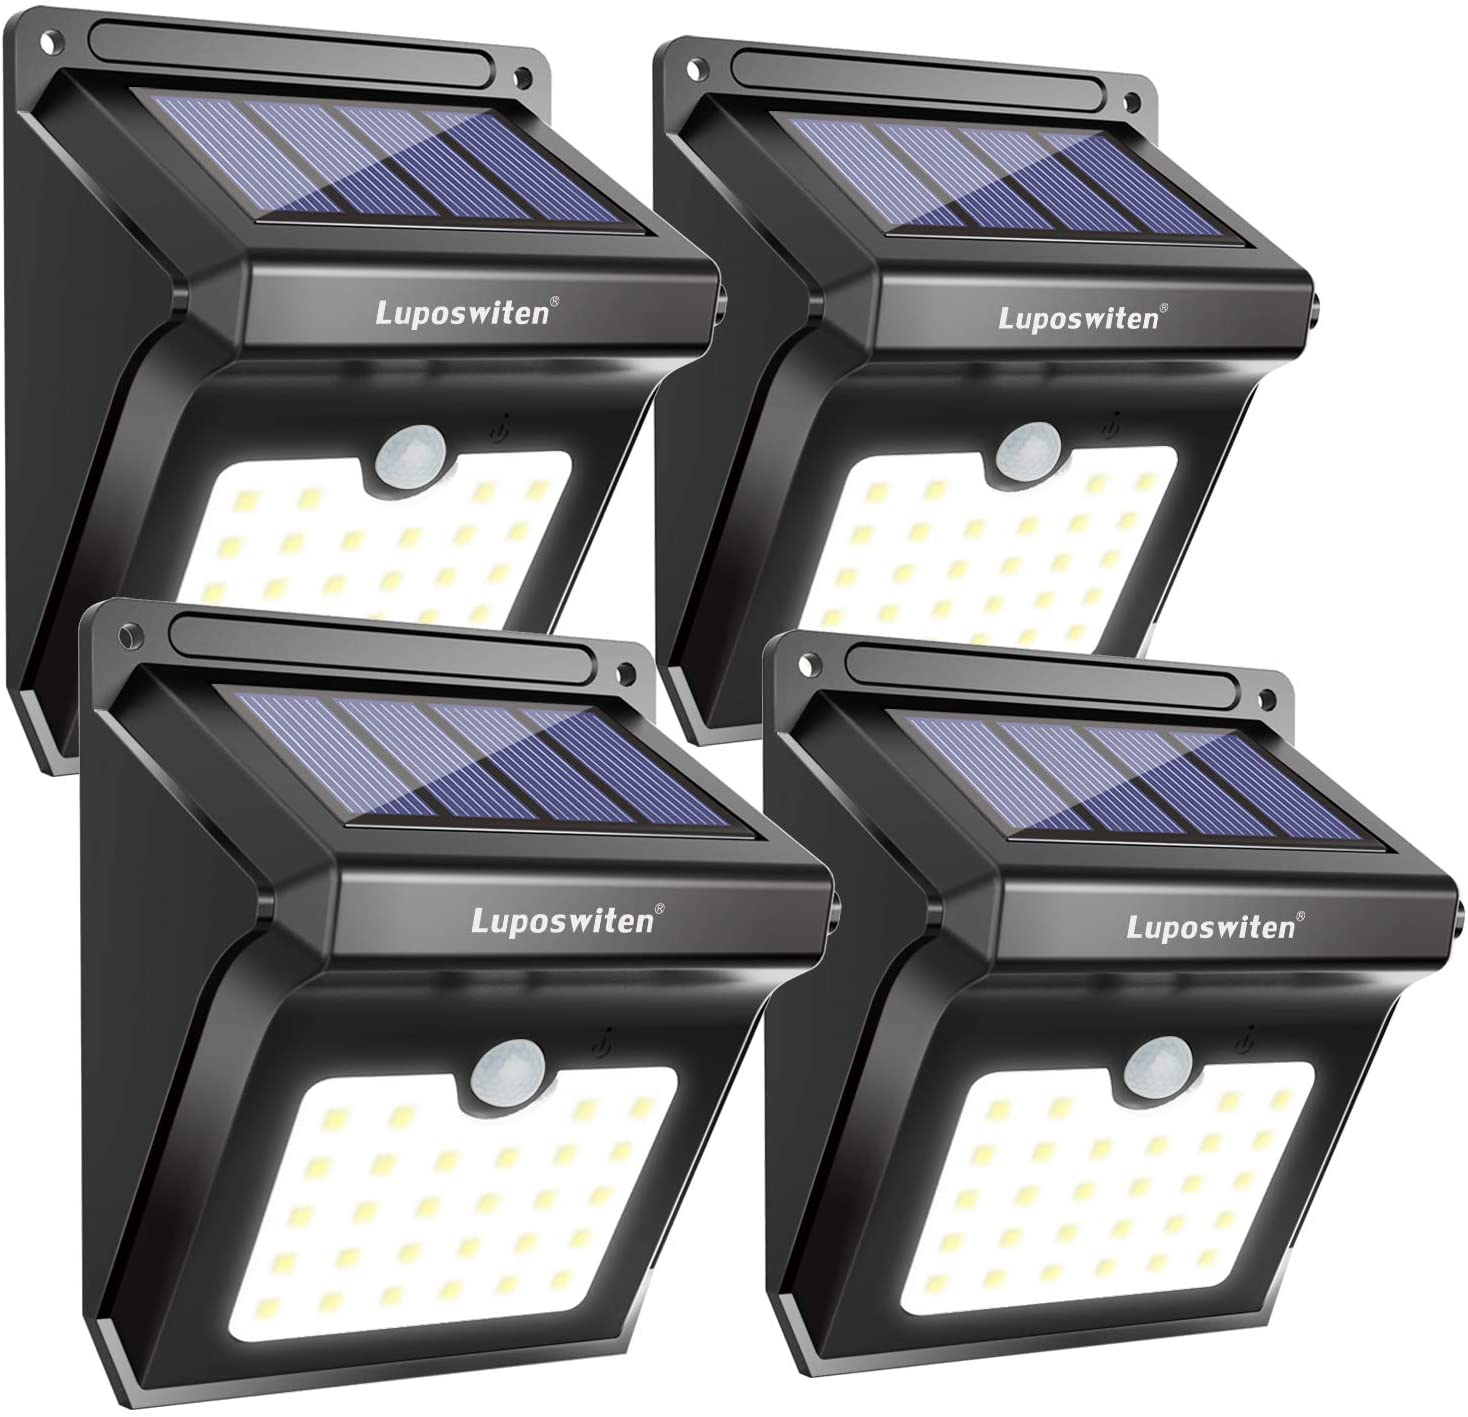 28 LEDs Solar Lights Outdoor, Luposwiten Solar Motion Sensor Lights Wireless Security Lights, 400 Lumen Waterproof Solar Powered